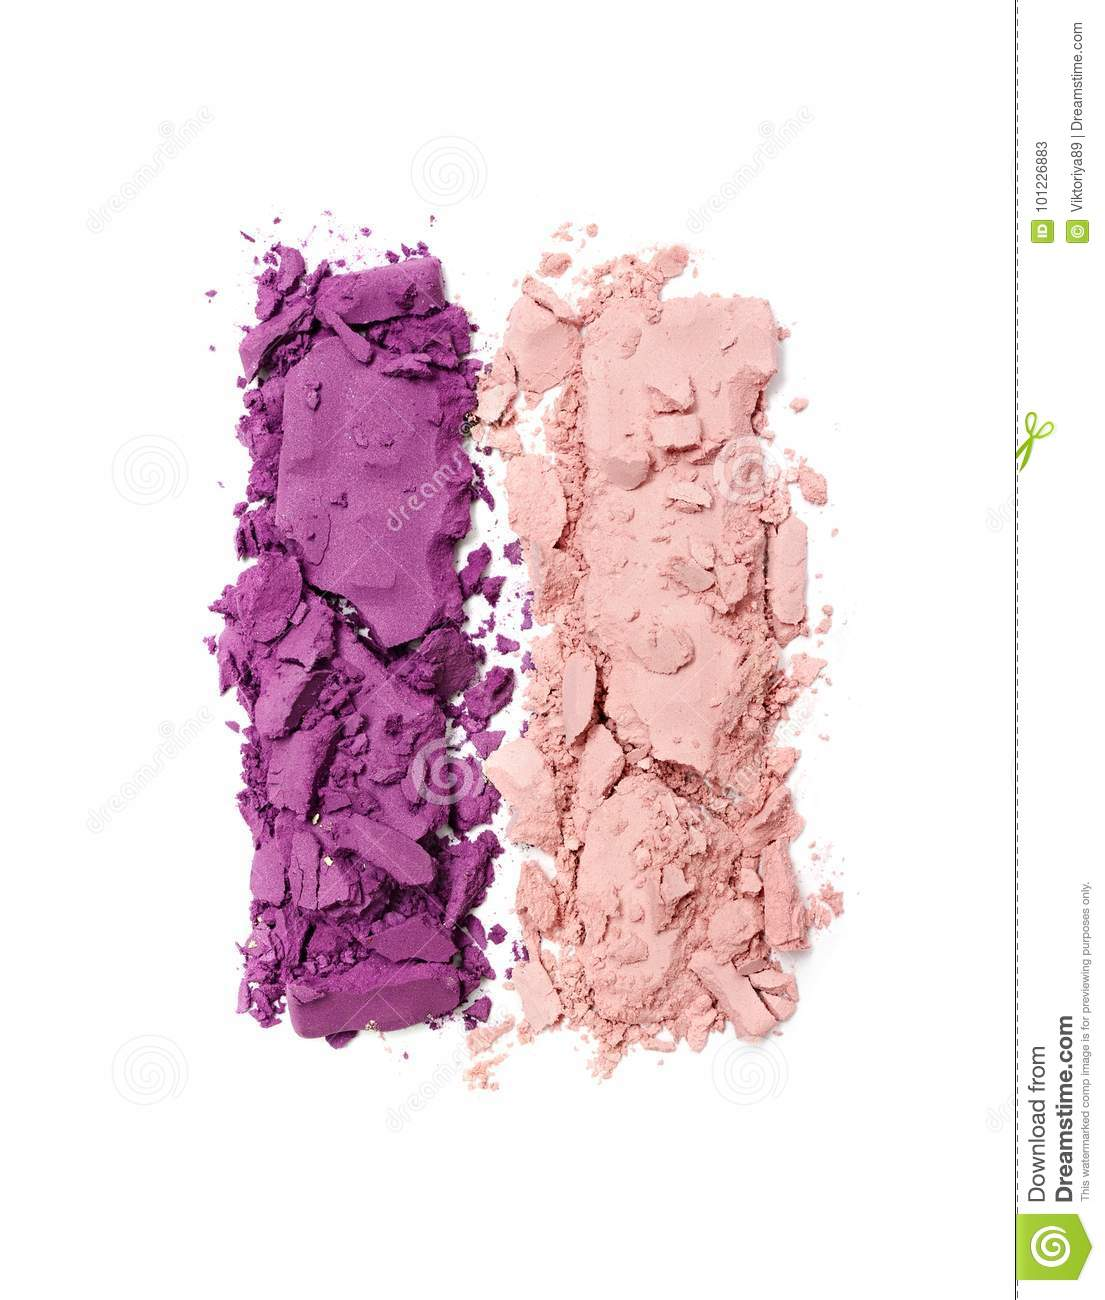 purple and beige crushed eyeshadow for makeup as sample of cosmetic